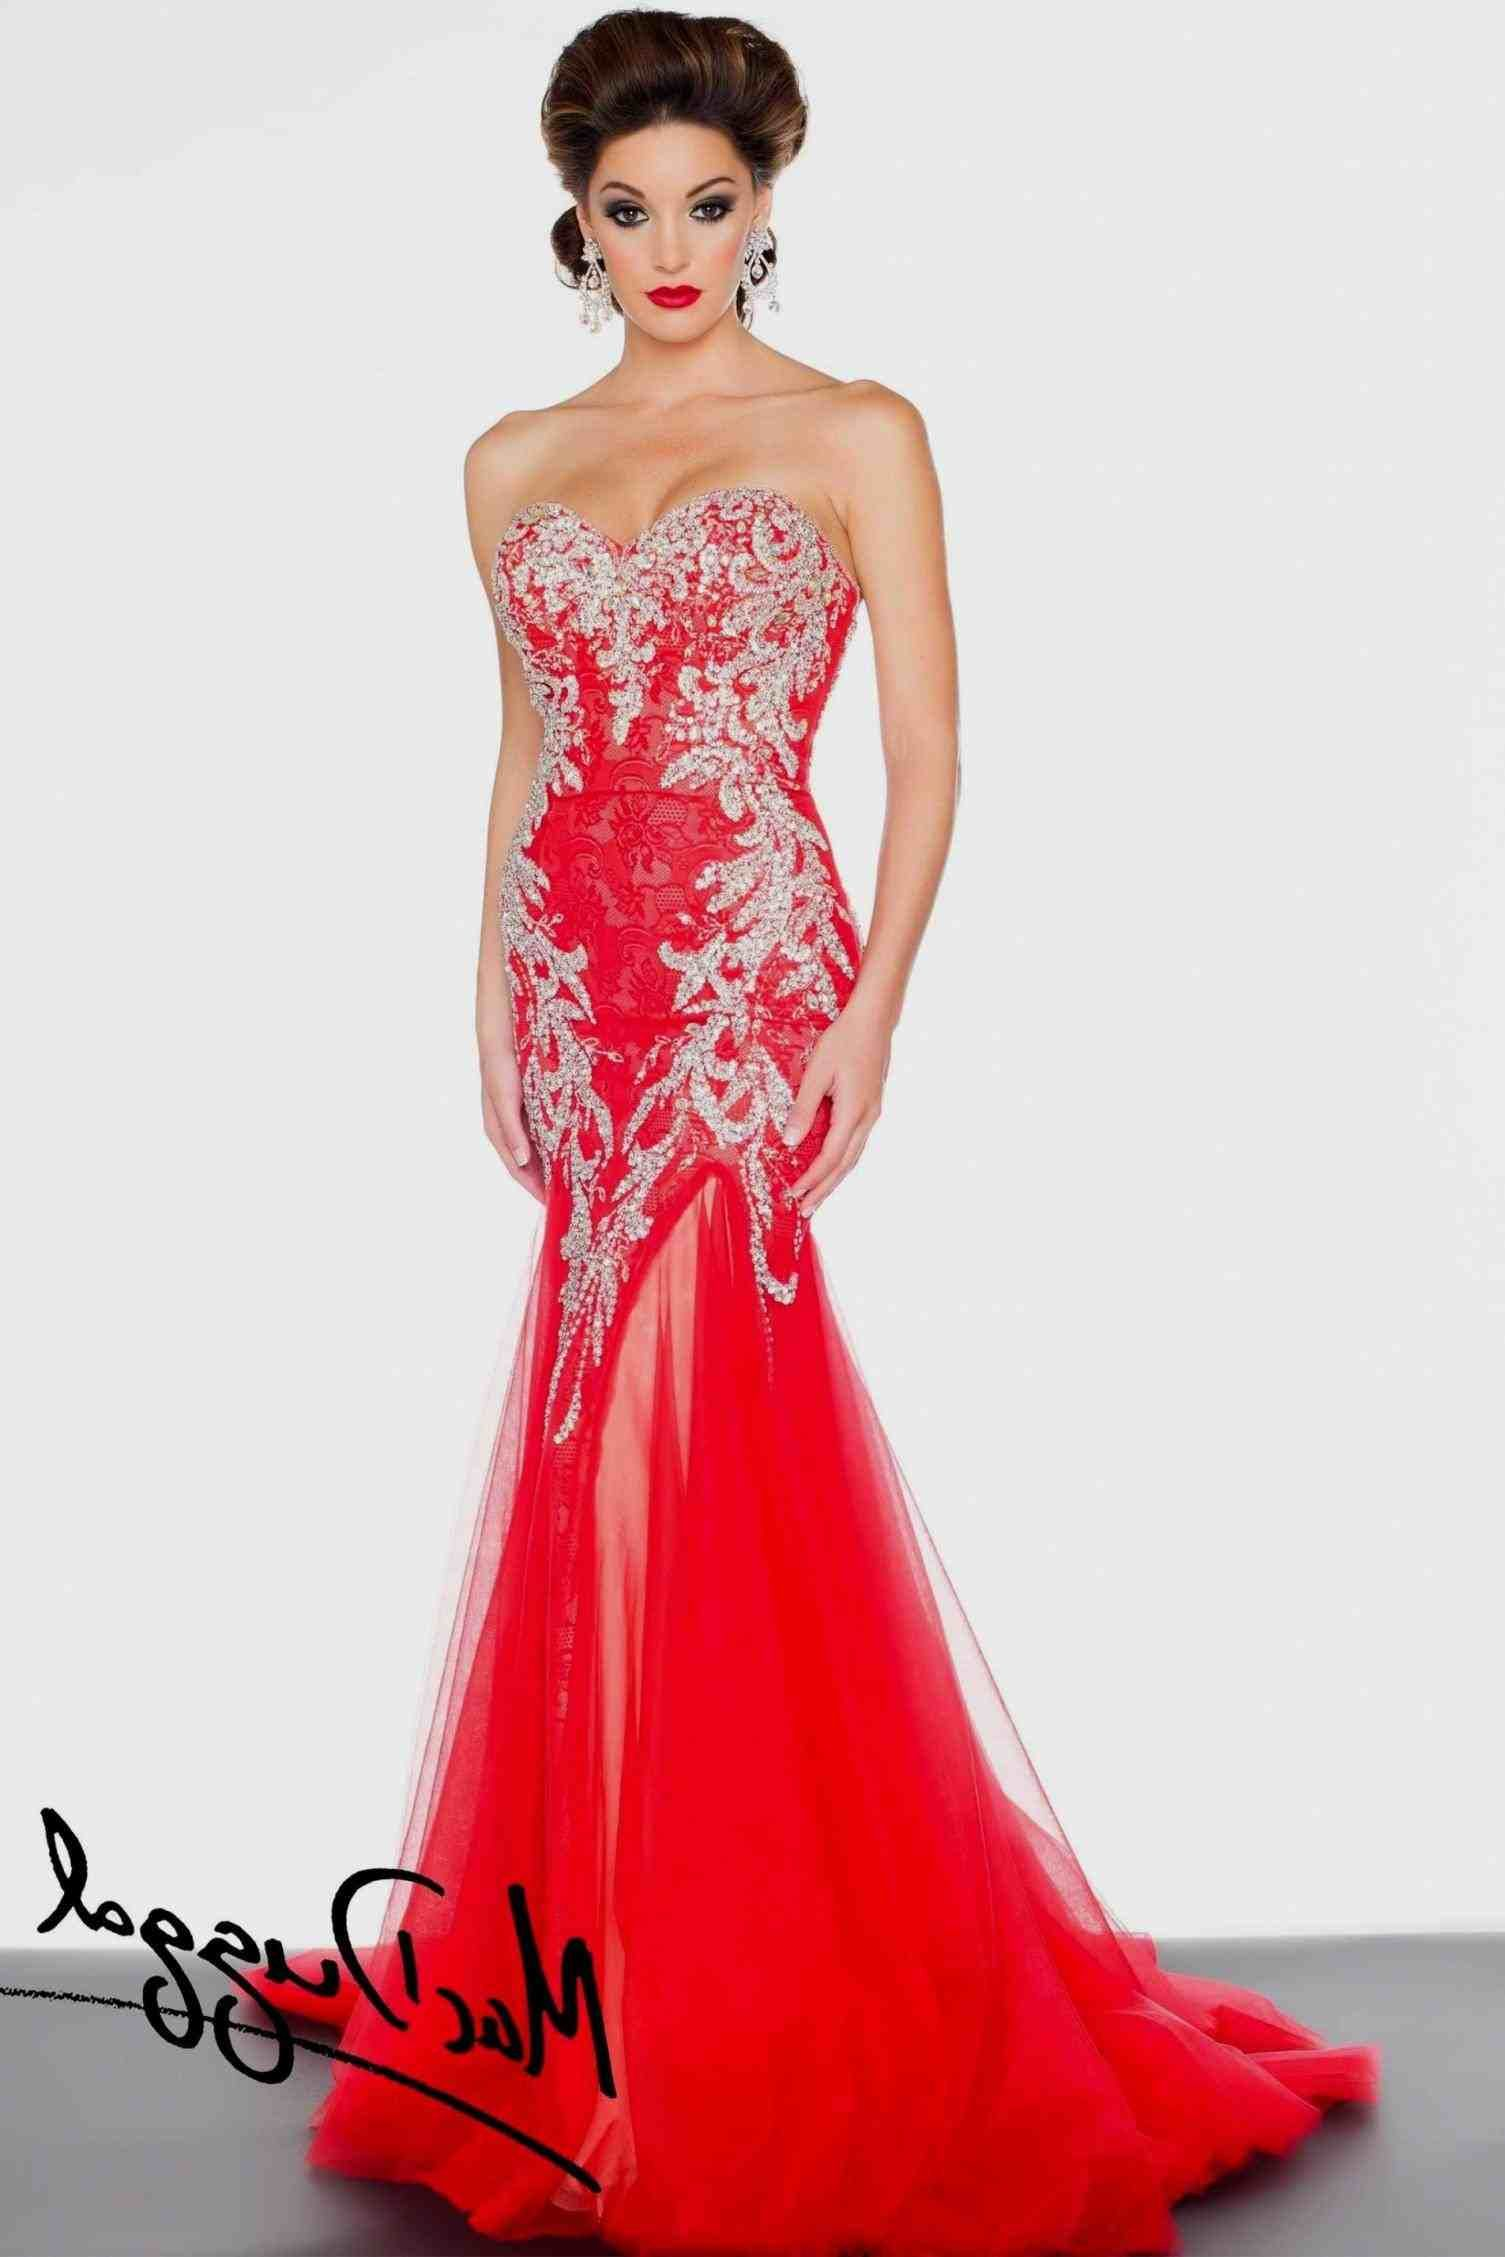 Unique black and red wedding dresses weddings pinterest red